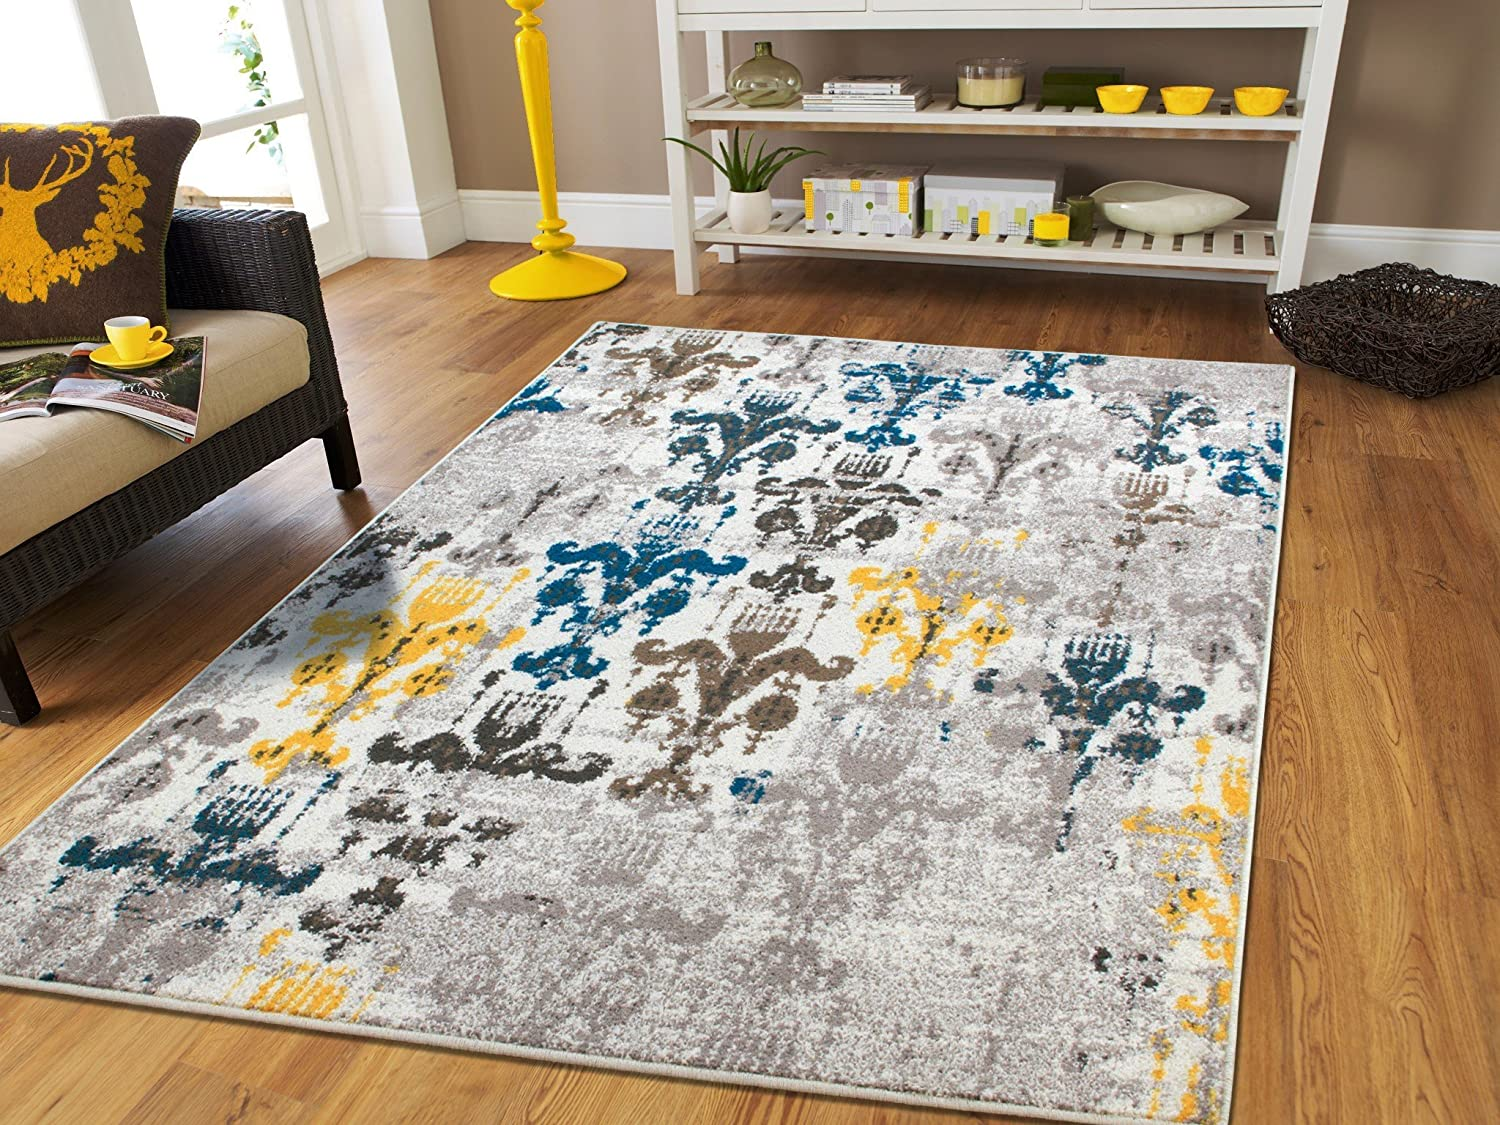 Amazon.com: New Fashion Faded Style Luxury Rugs For Bedroom For Teens  Modern Rugs 5x7 Contemporary Rug 5x8 Kitchen Rugs With Blue Grey Brown  Yellow 5x7 Rugs ...